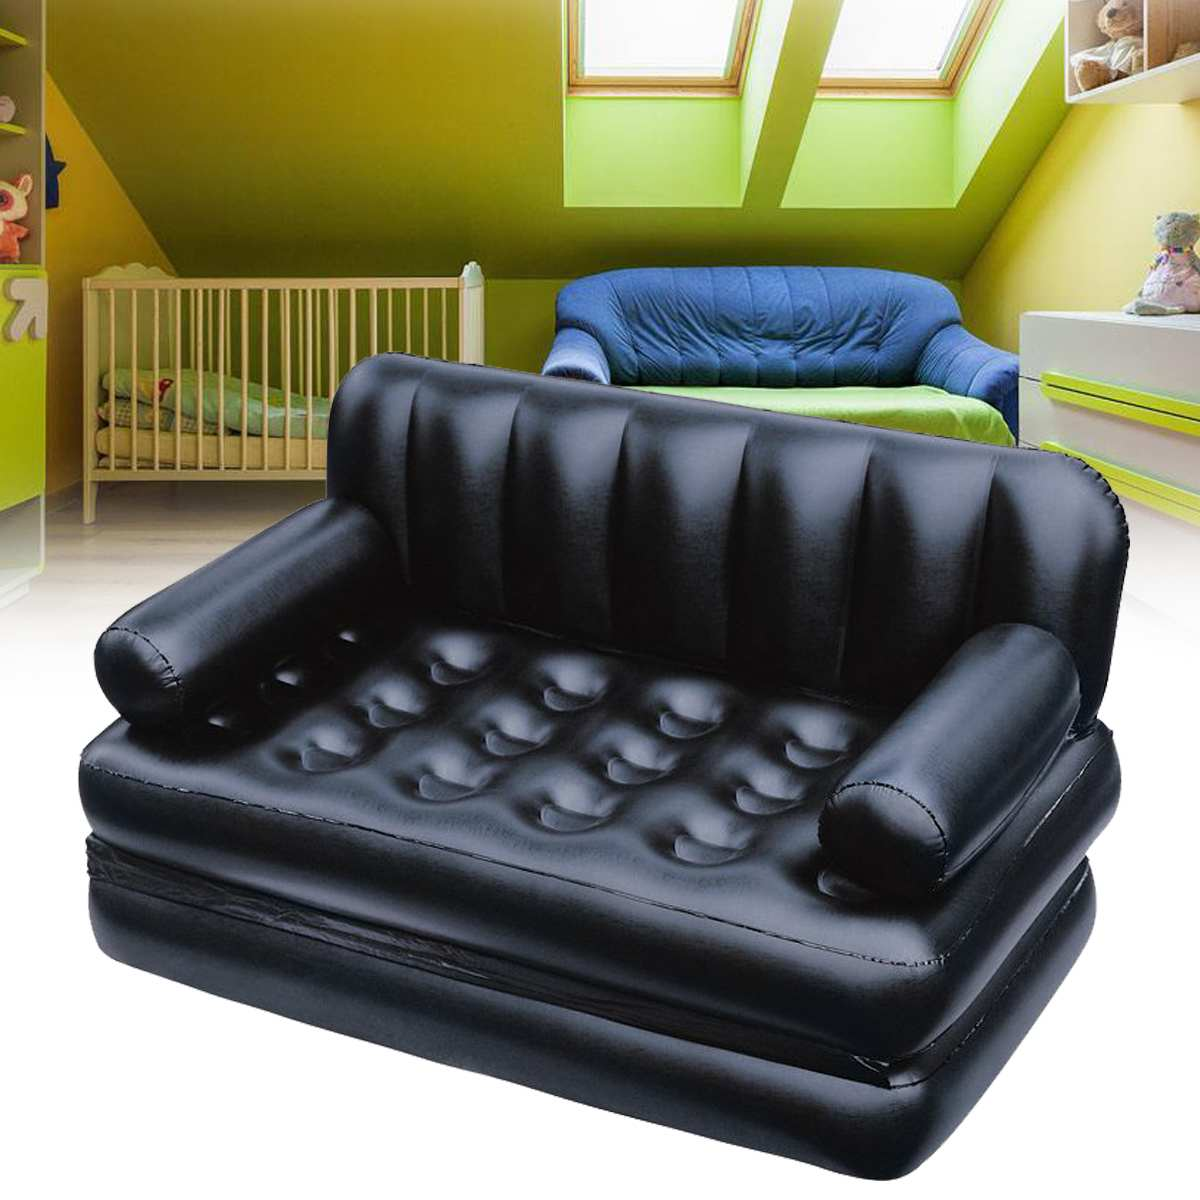 Outdoor Furniture Inflatable Garden Sofa Lounge Blow Up Double Air Bed Multifunction Couch Camping Mattress Airbed for 2 People